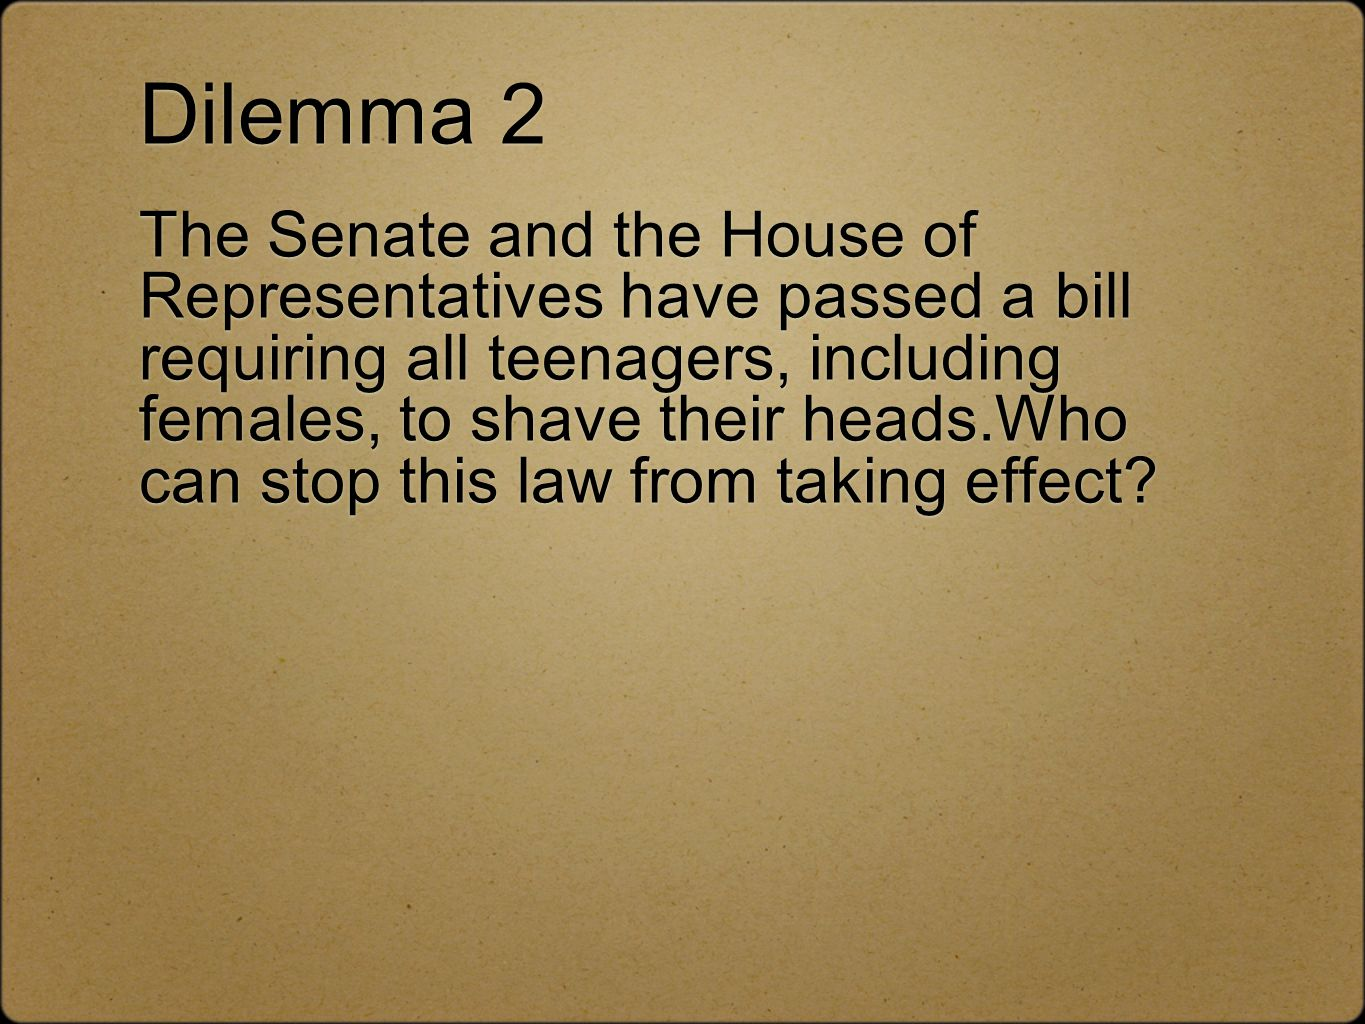 Dilemma 2 The Senate and the House of Representatives have passed a bill requiring all teenagers, including females, to shave their heads.Who can stop this law from taking effect